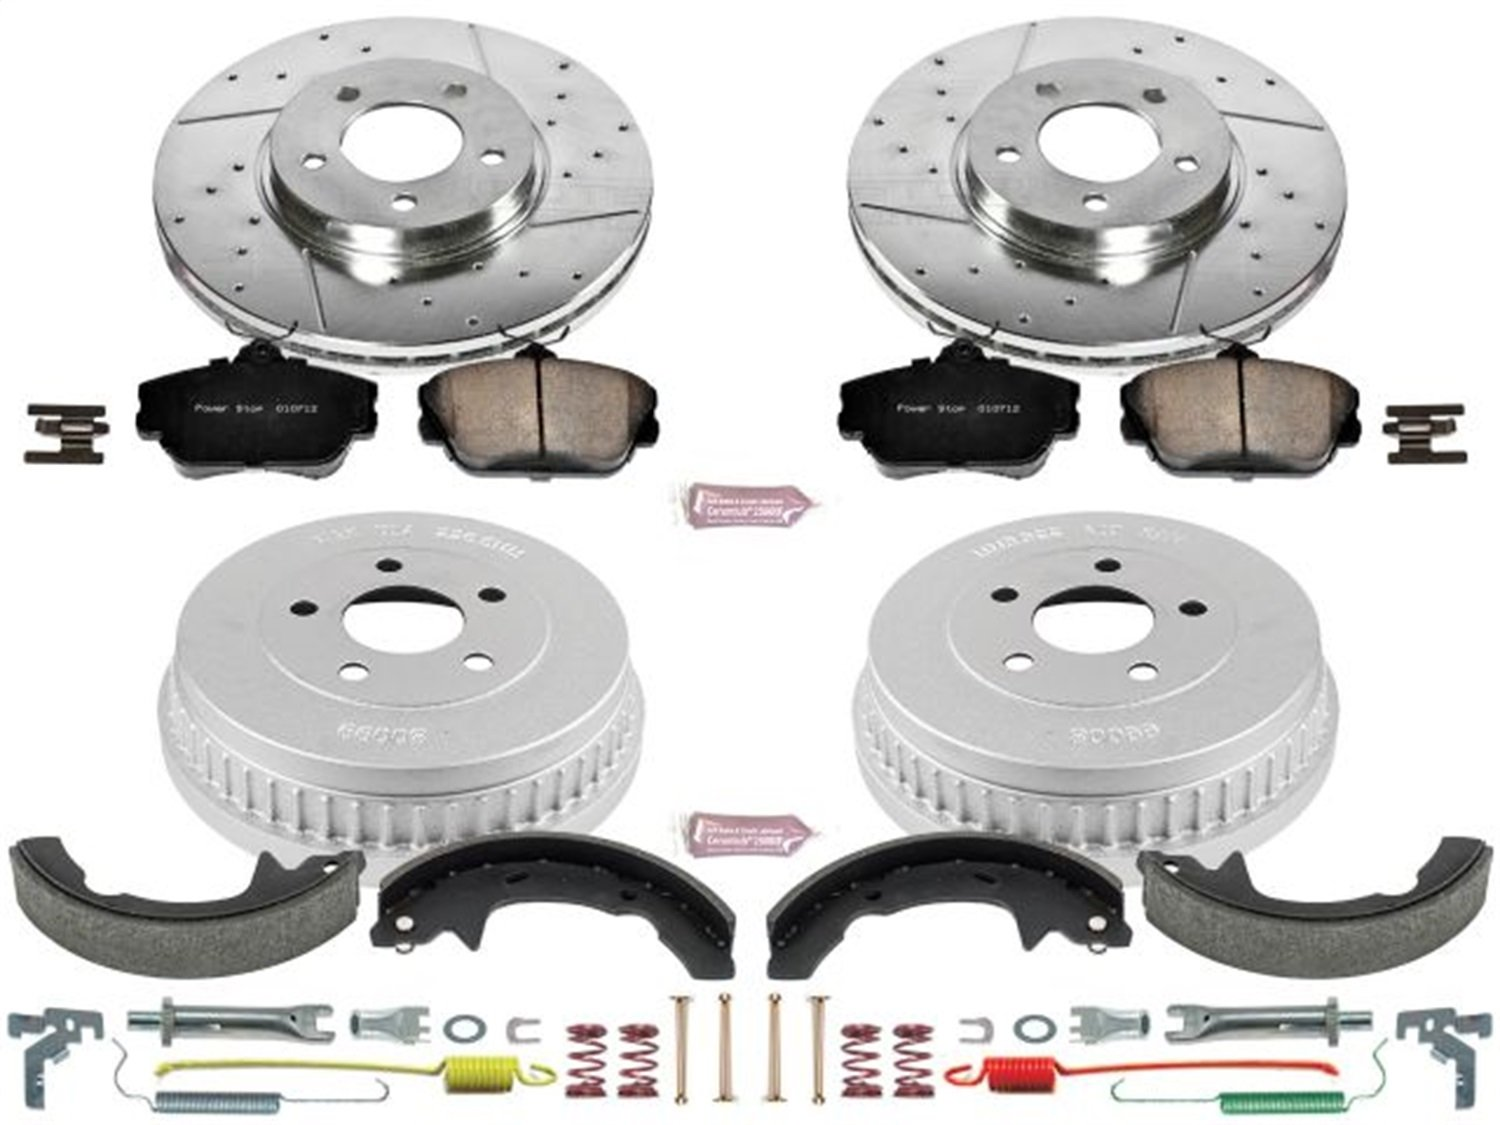 Power Stop Front /& Rear K15102DK Performance Pad Rotor Drum and Shoe Kits